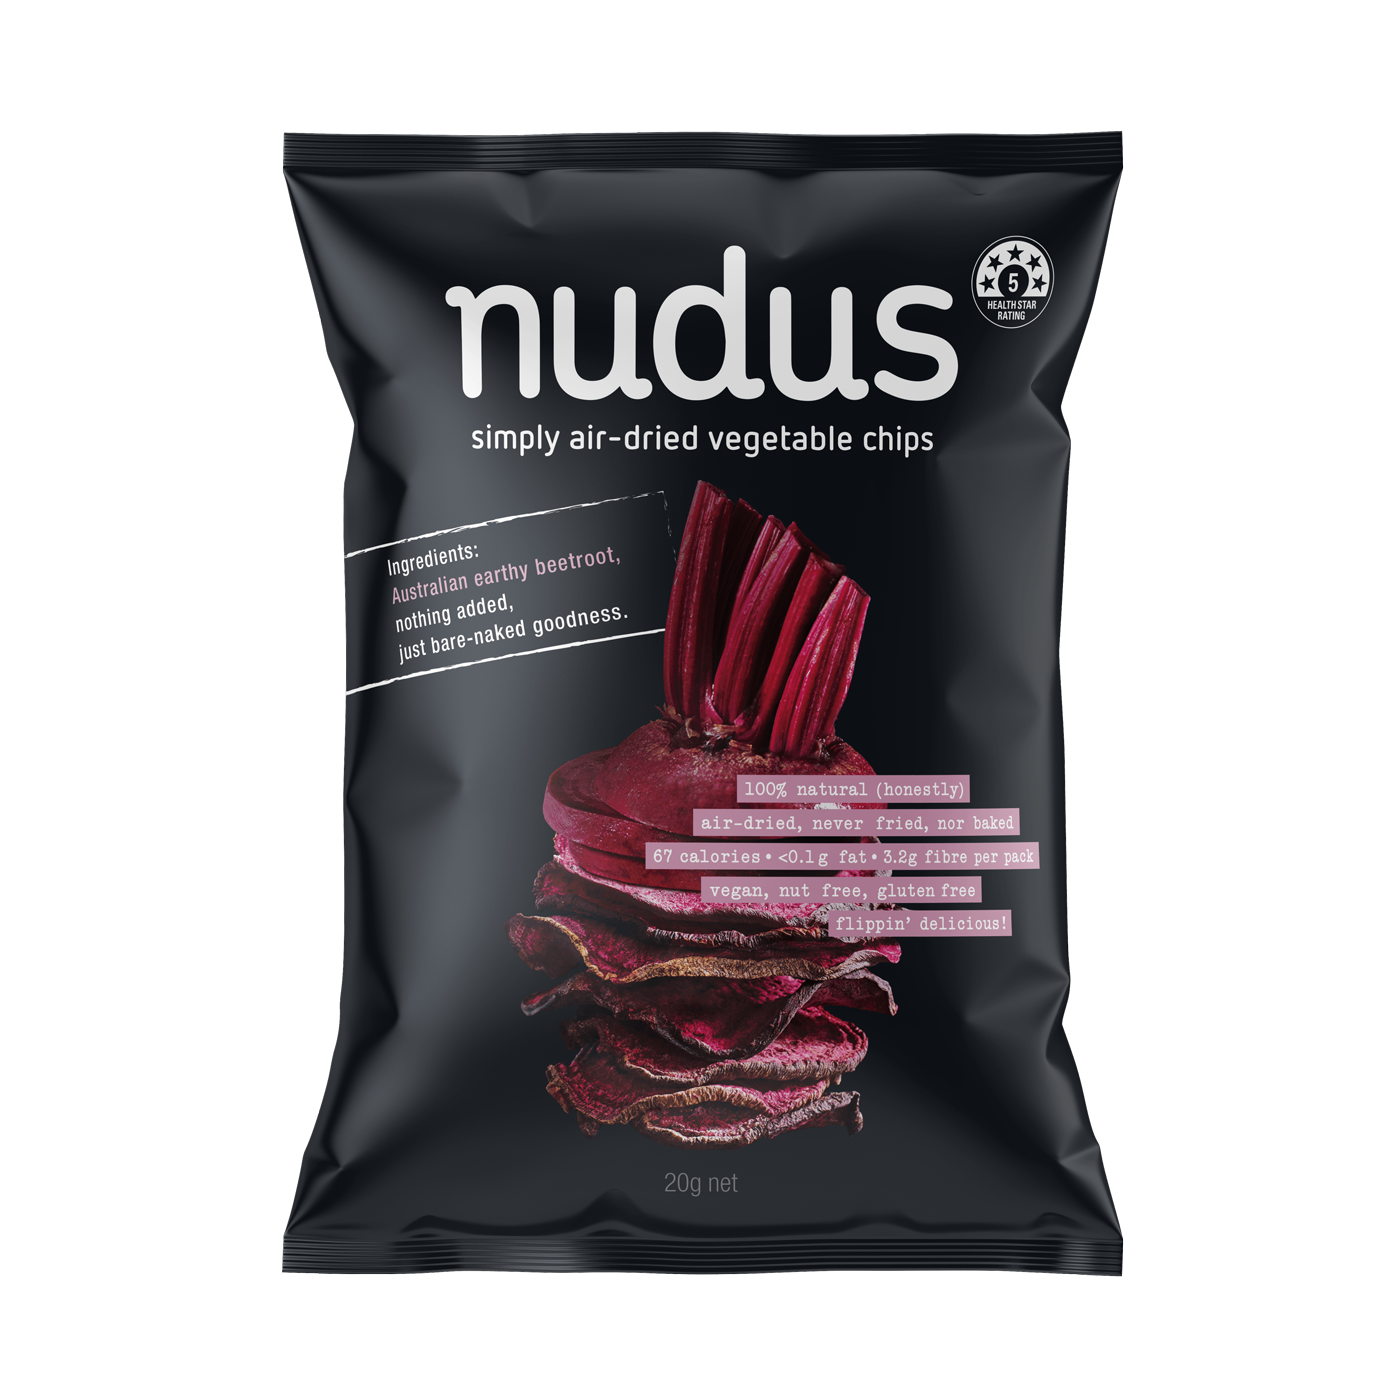 beetroot vegetable chips - 12 bags ($2.75 / 20g bag)